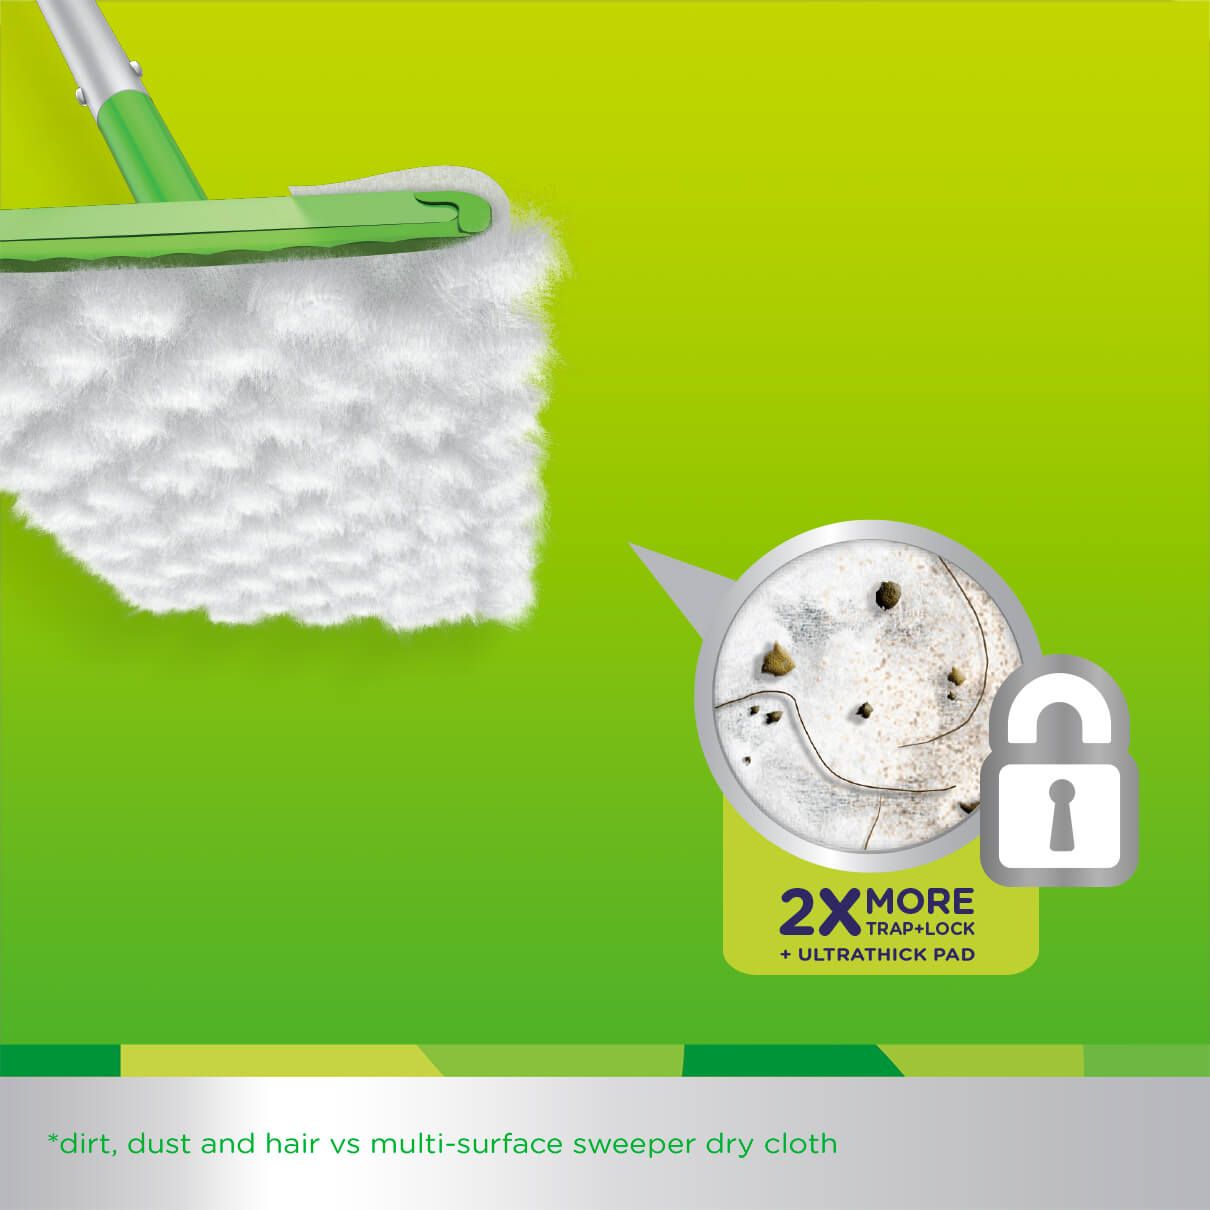 Swiffer Sweeper Dry Refill 2x